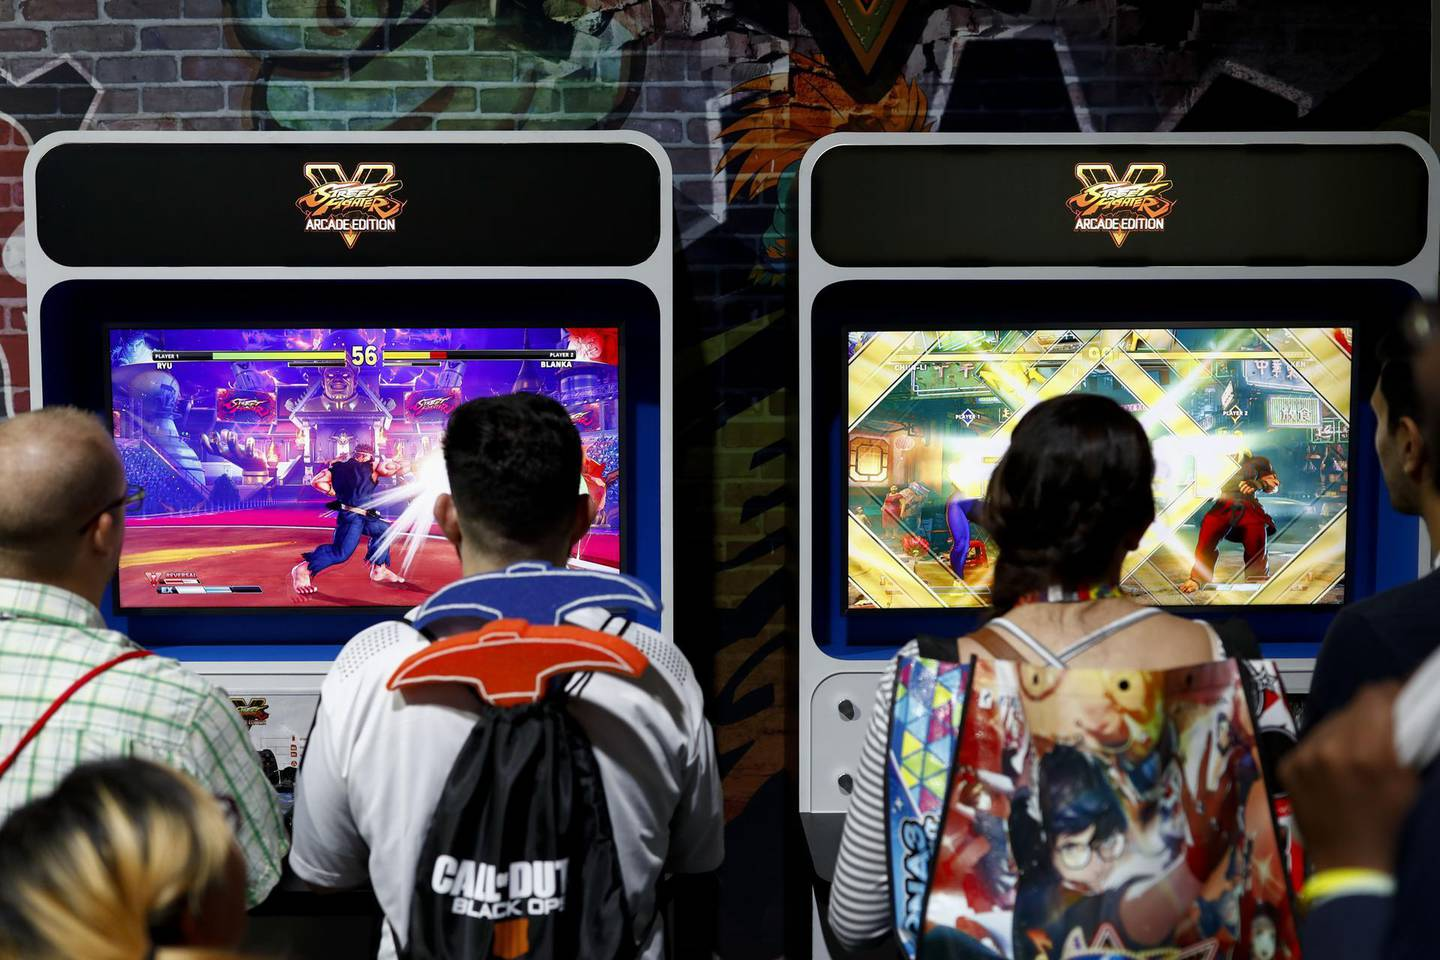 Attendees play the Capcom Co. Street Fighter V: Arcade Edition video game during the E3 Electronic Entertainment Expo in Los Angeles, California, U.S., in Los Angeles, California, U.S., on Wednesday, June 13, 2018. For three days, leading-edge companies, groundbreaking new technologies and never-before-seen products are showcased at E3. Photographer: Patrick T. Fallon/Bloomberg